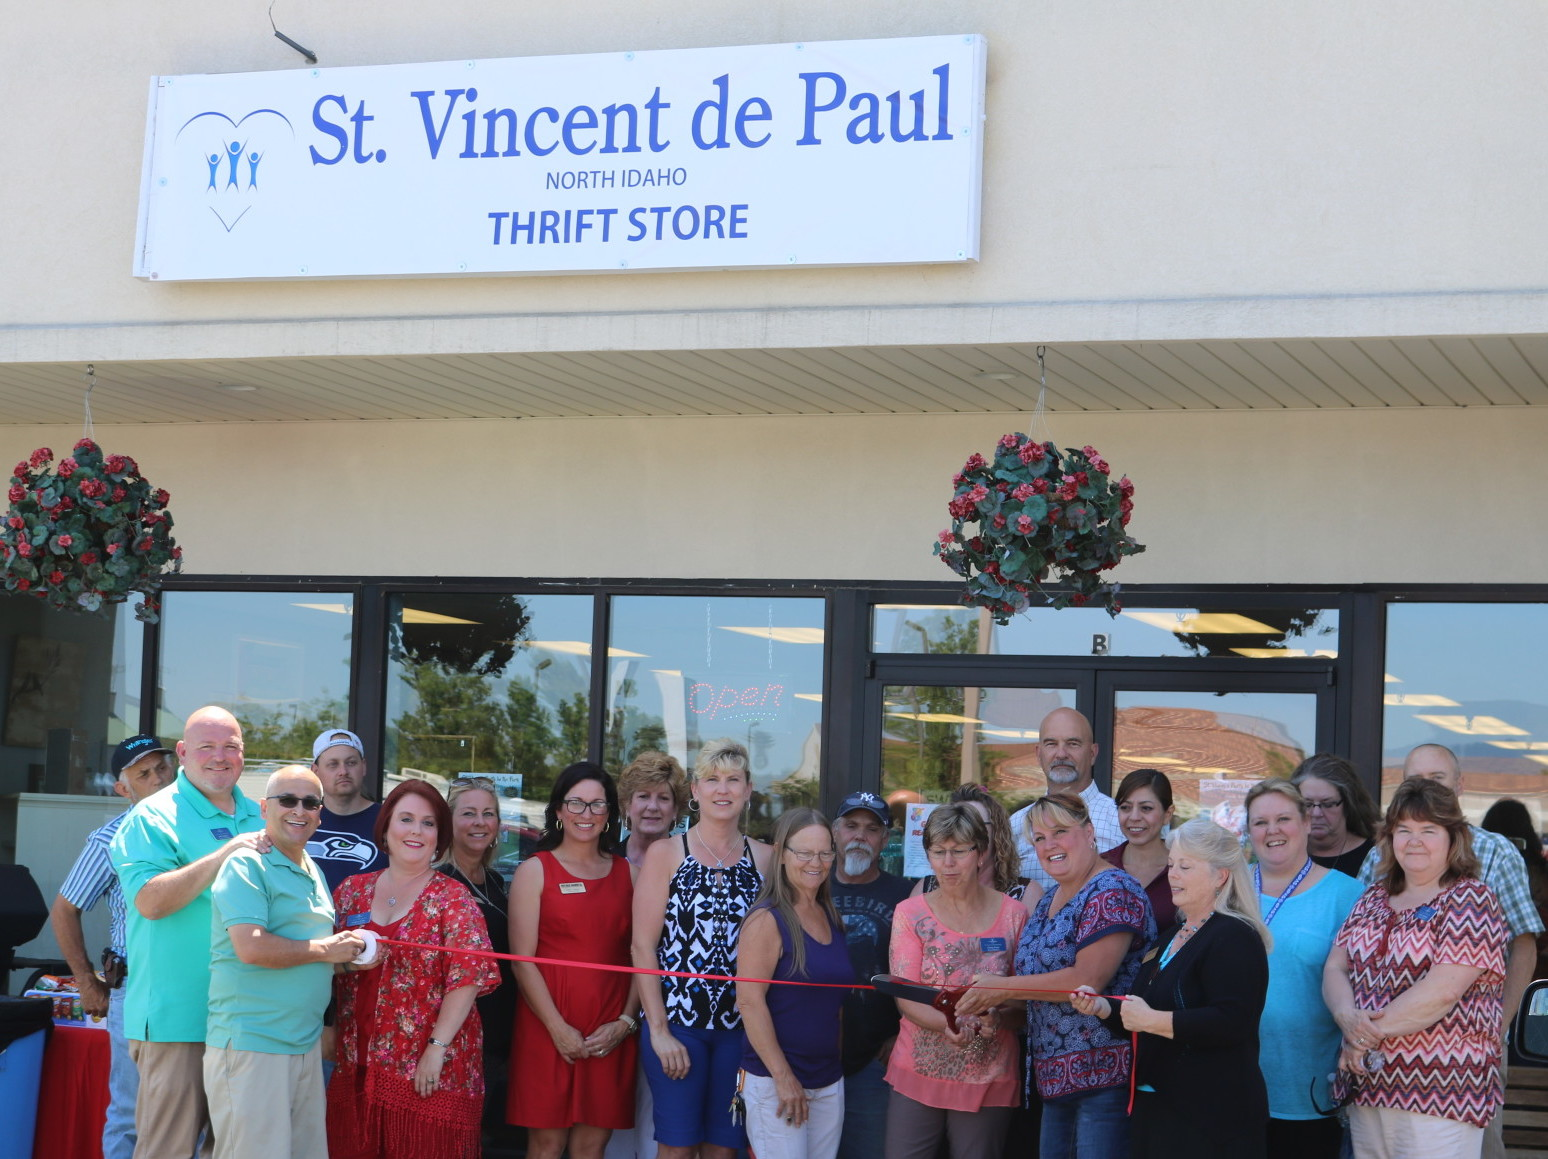 St-Vincent-de-Paul-new-store-Ribbon-Cutting-w1920-w1548.jpg